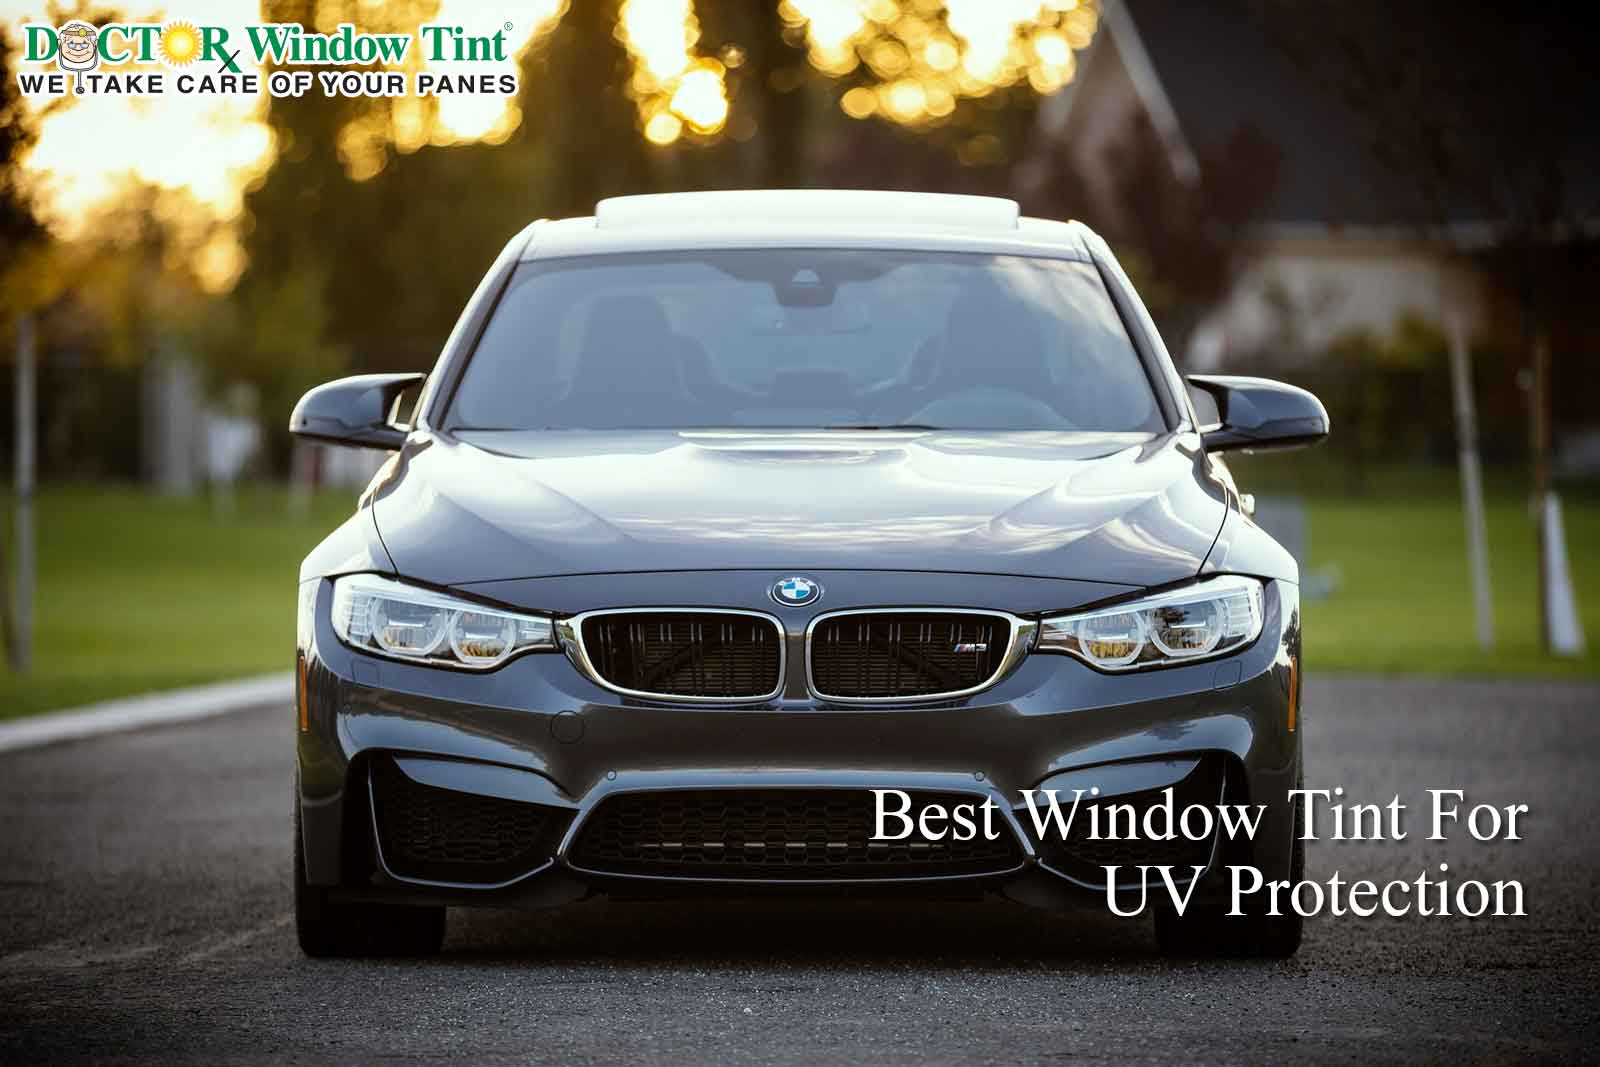 Best-Window-Tint